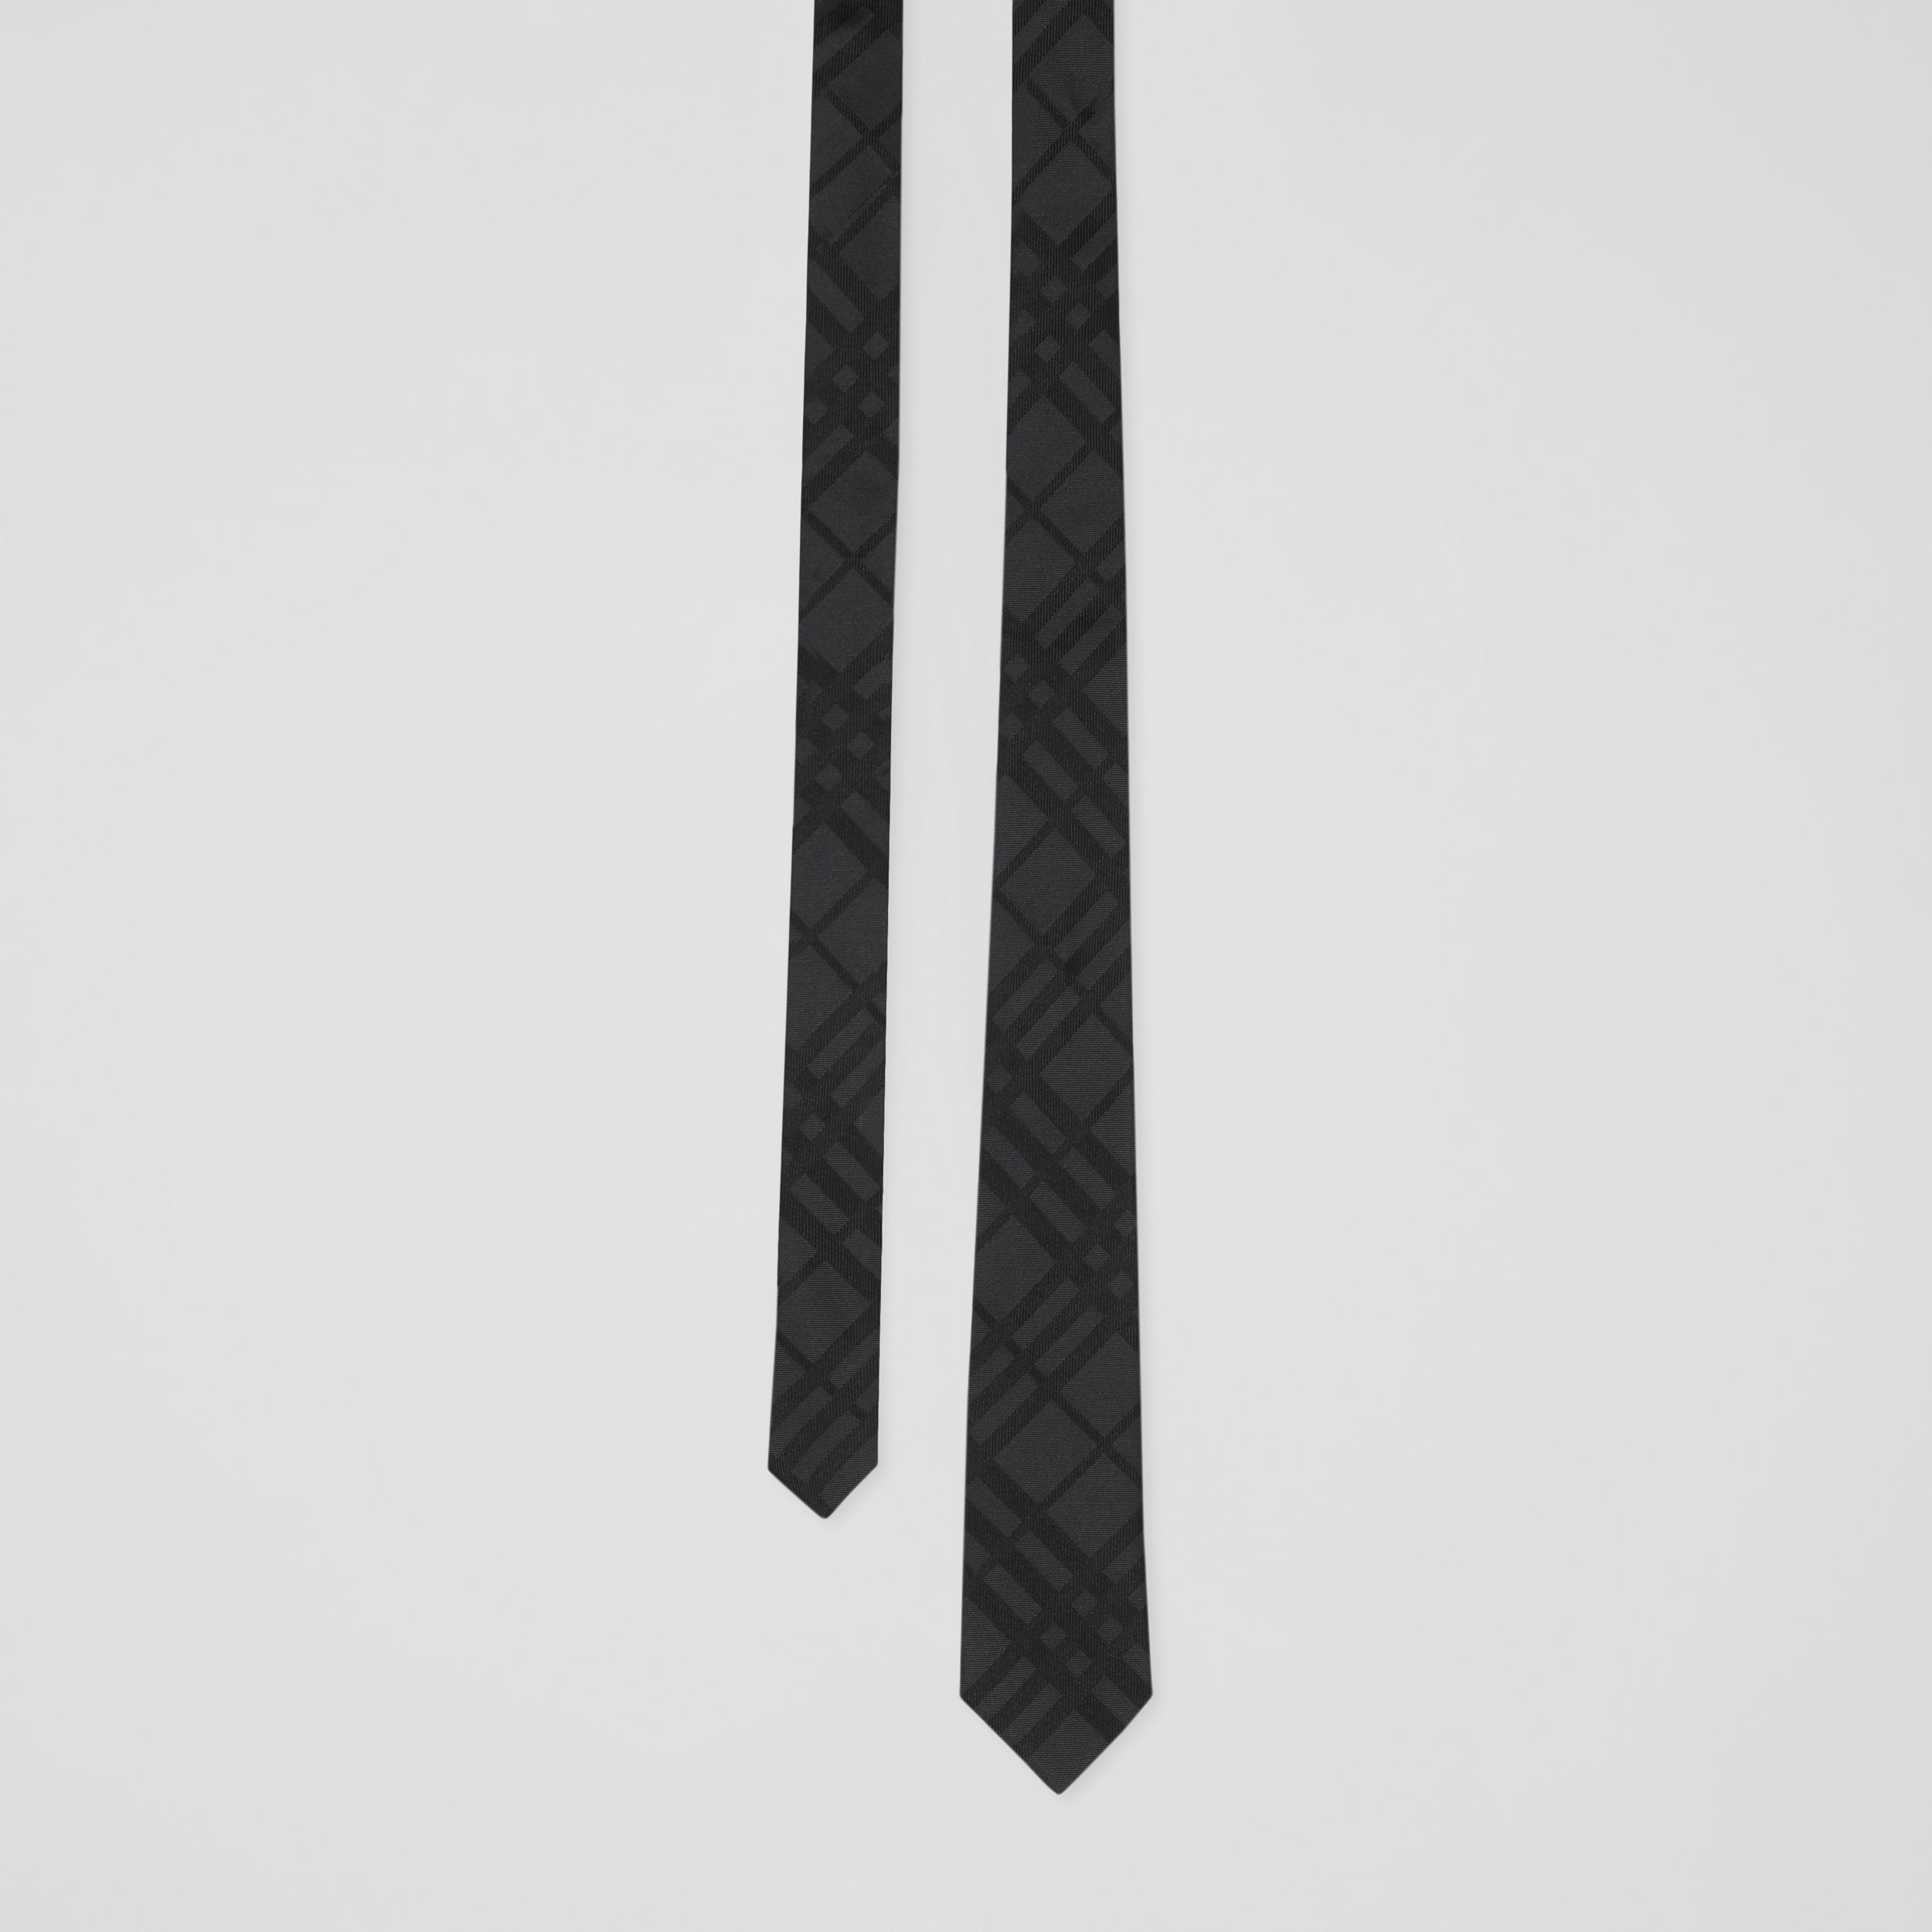 Classic Cut Check Silk Jacquard Tie in Black - Men | Burberry - 1